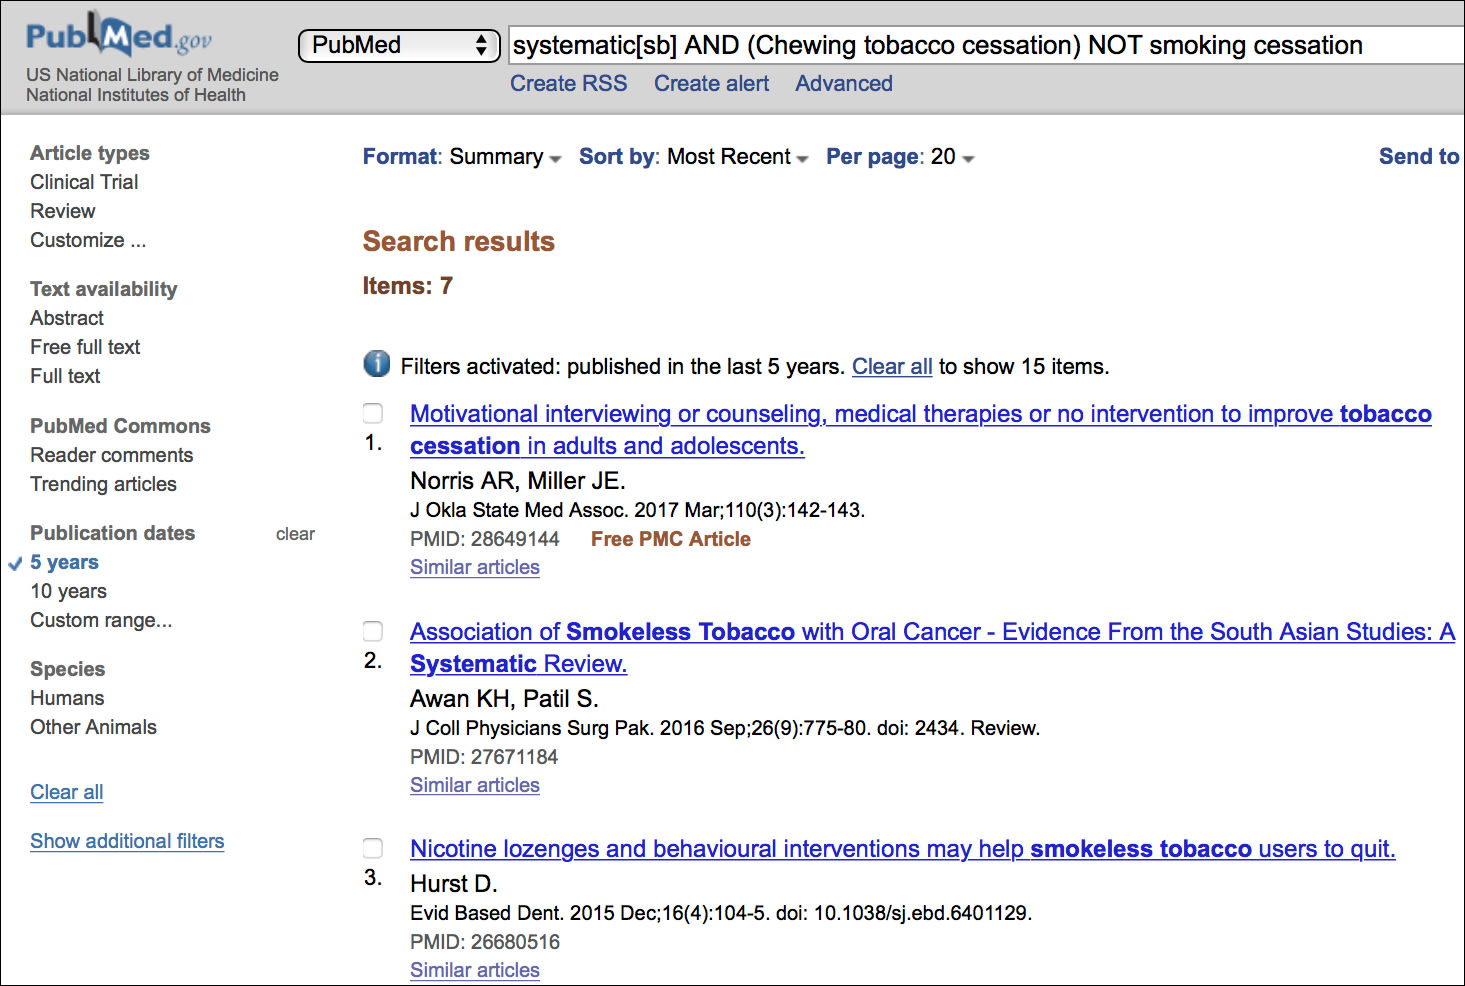 Image: Narrowing the Search Results of Clinical Study Categories for Chewing Tobacco Cessation